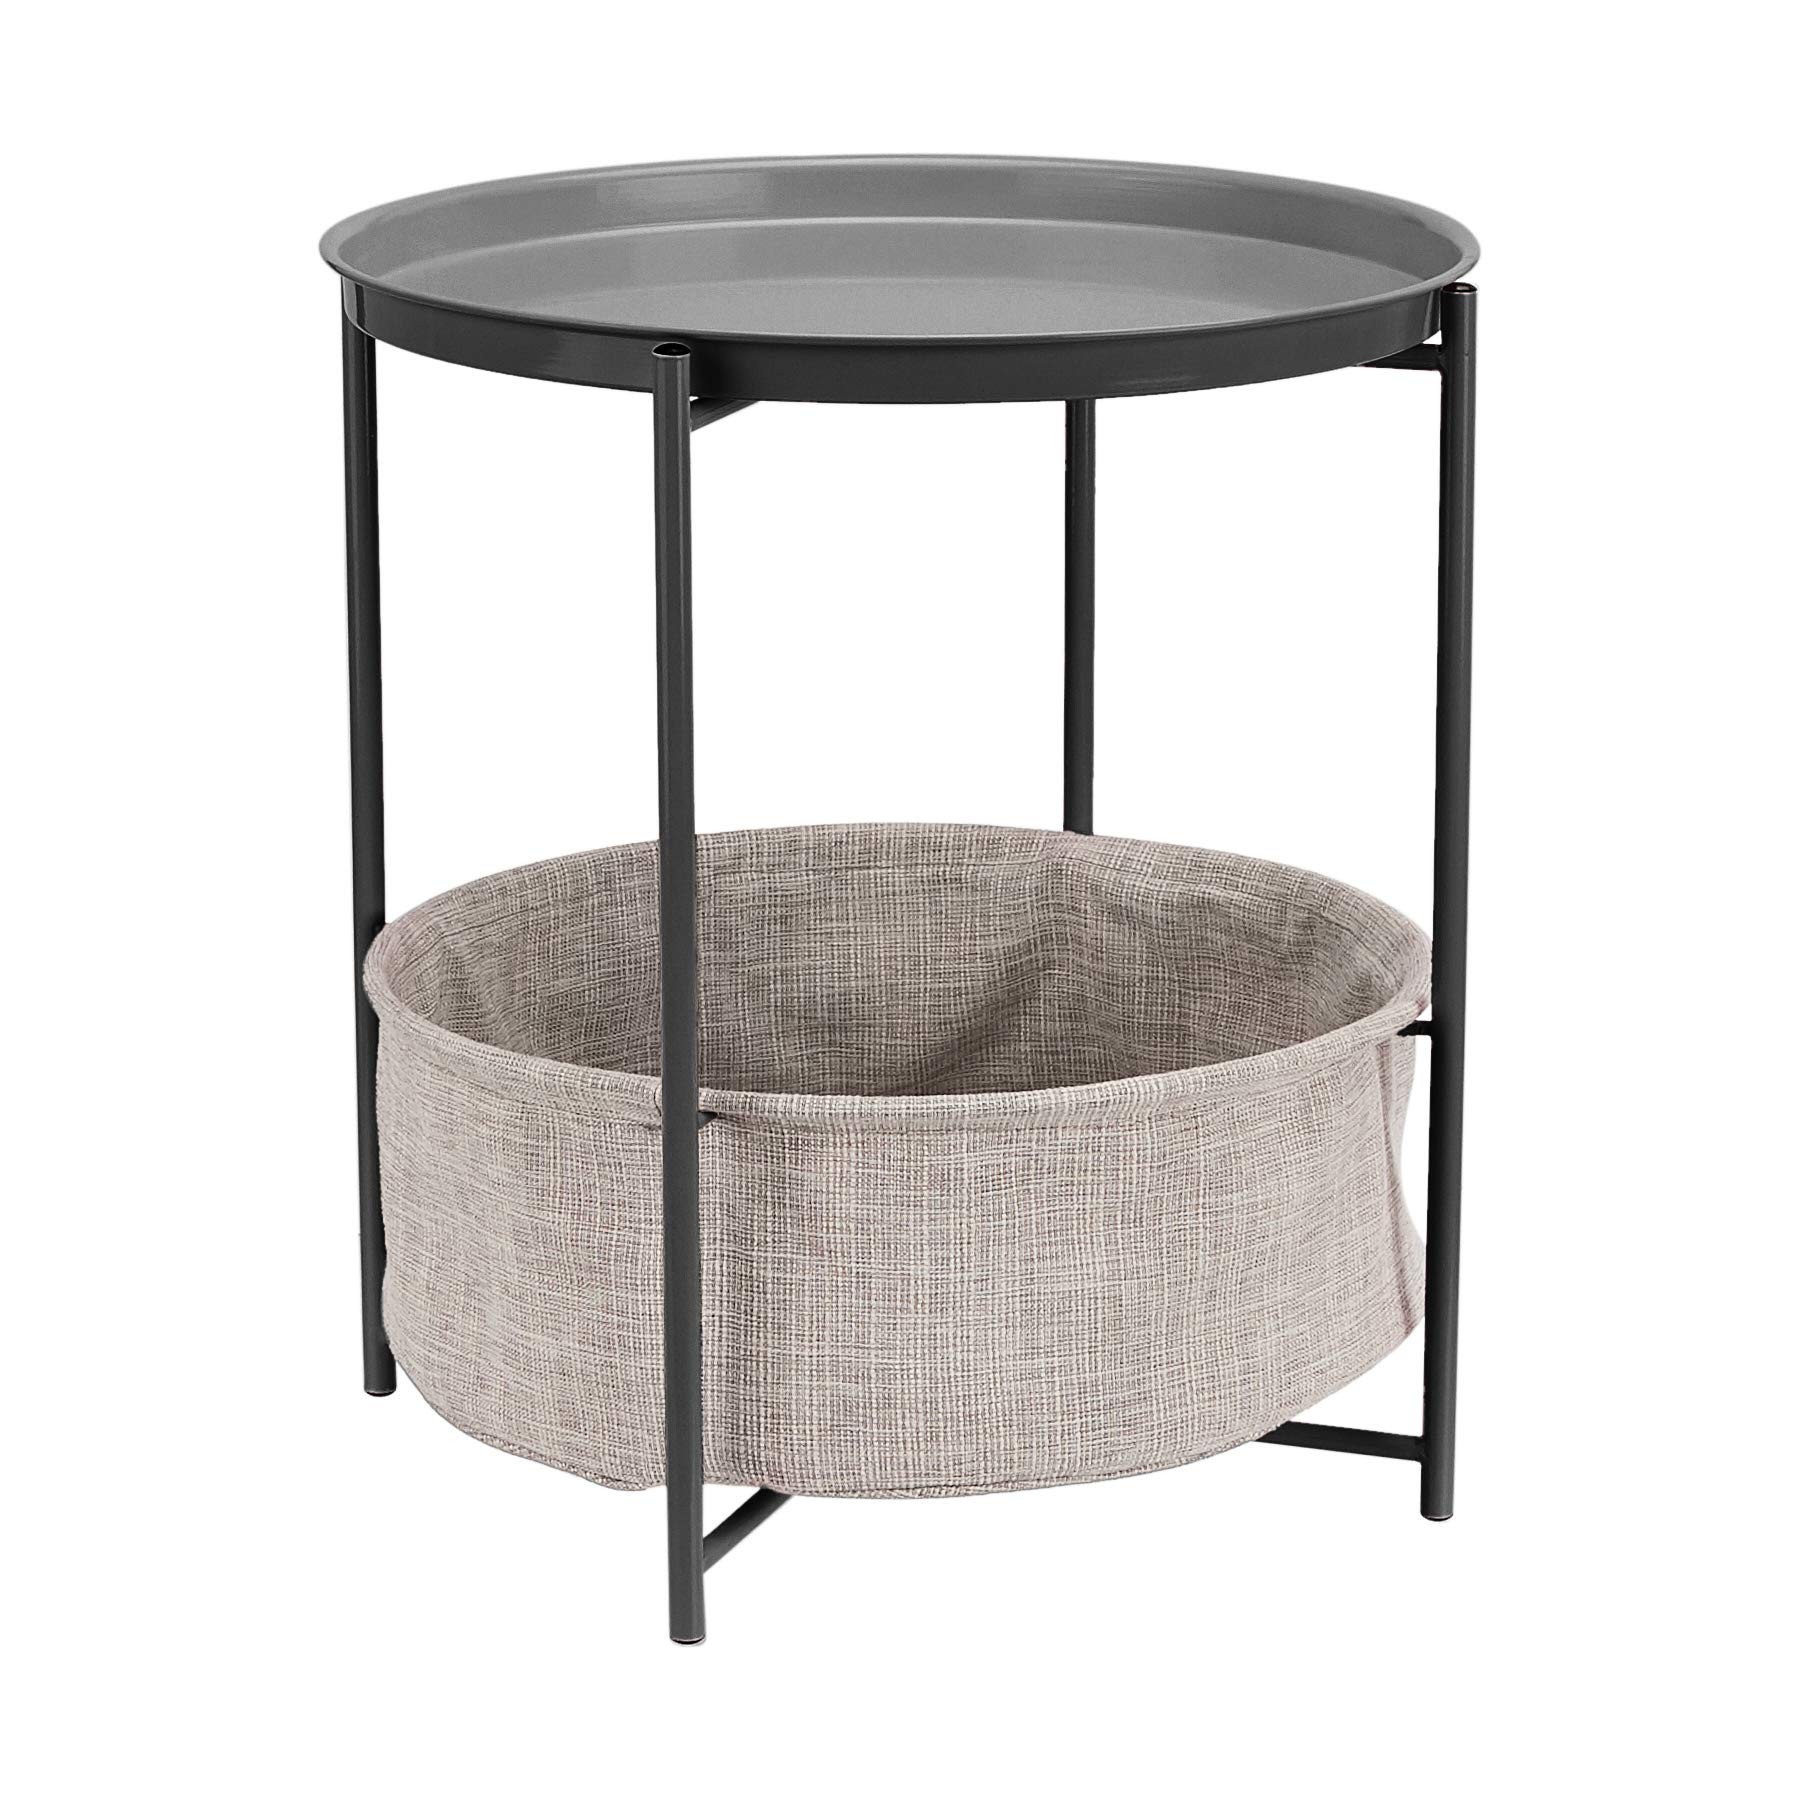 Round Storage End Table - Charcoal with Heather Grey Fabric